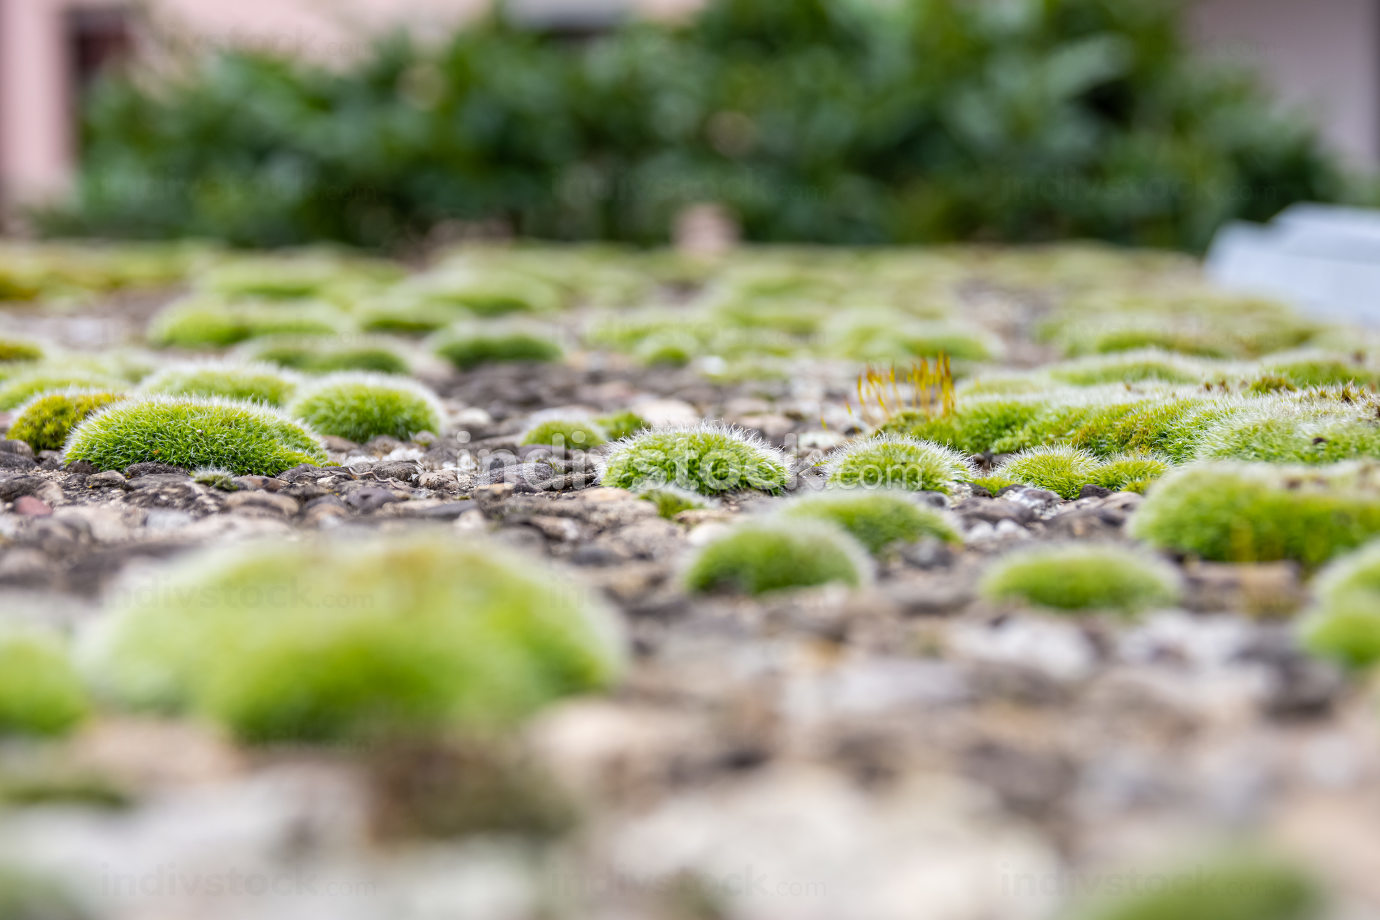 Low angle view over a carpet of green moss